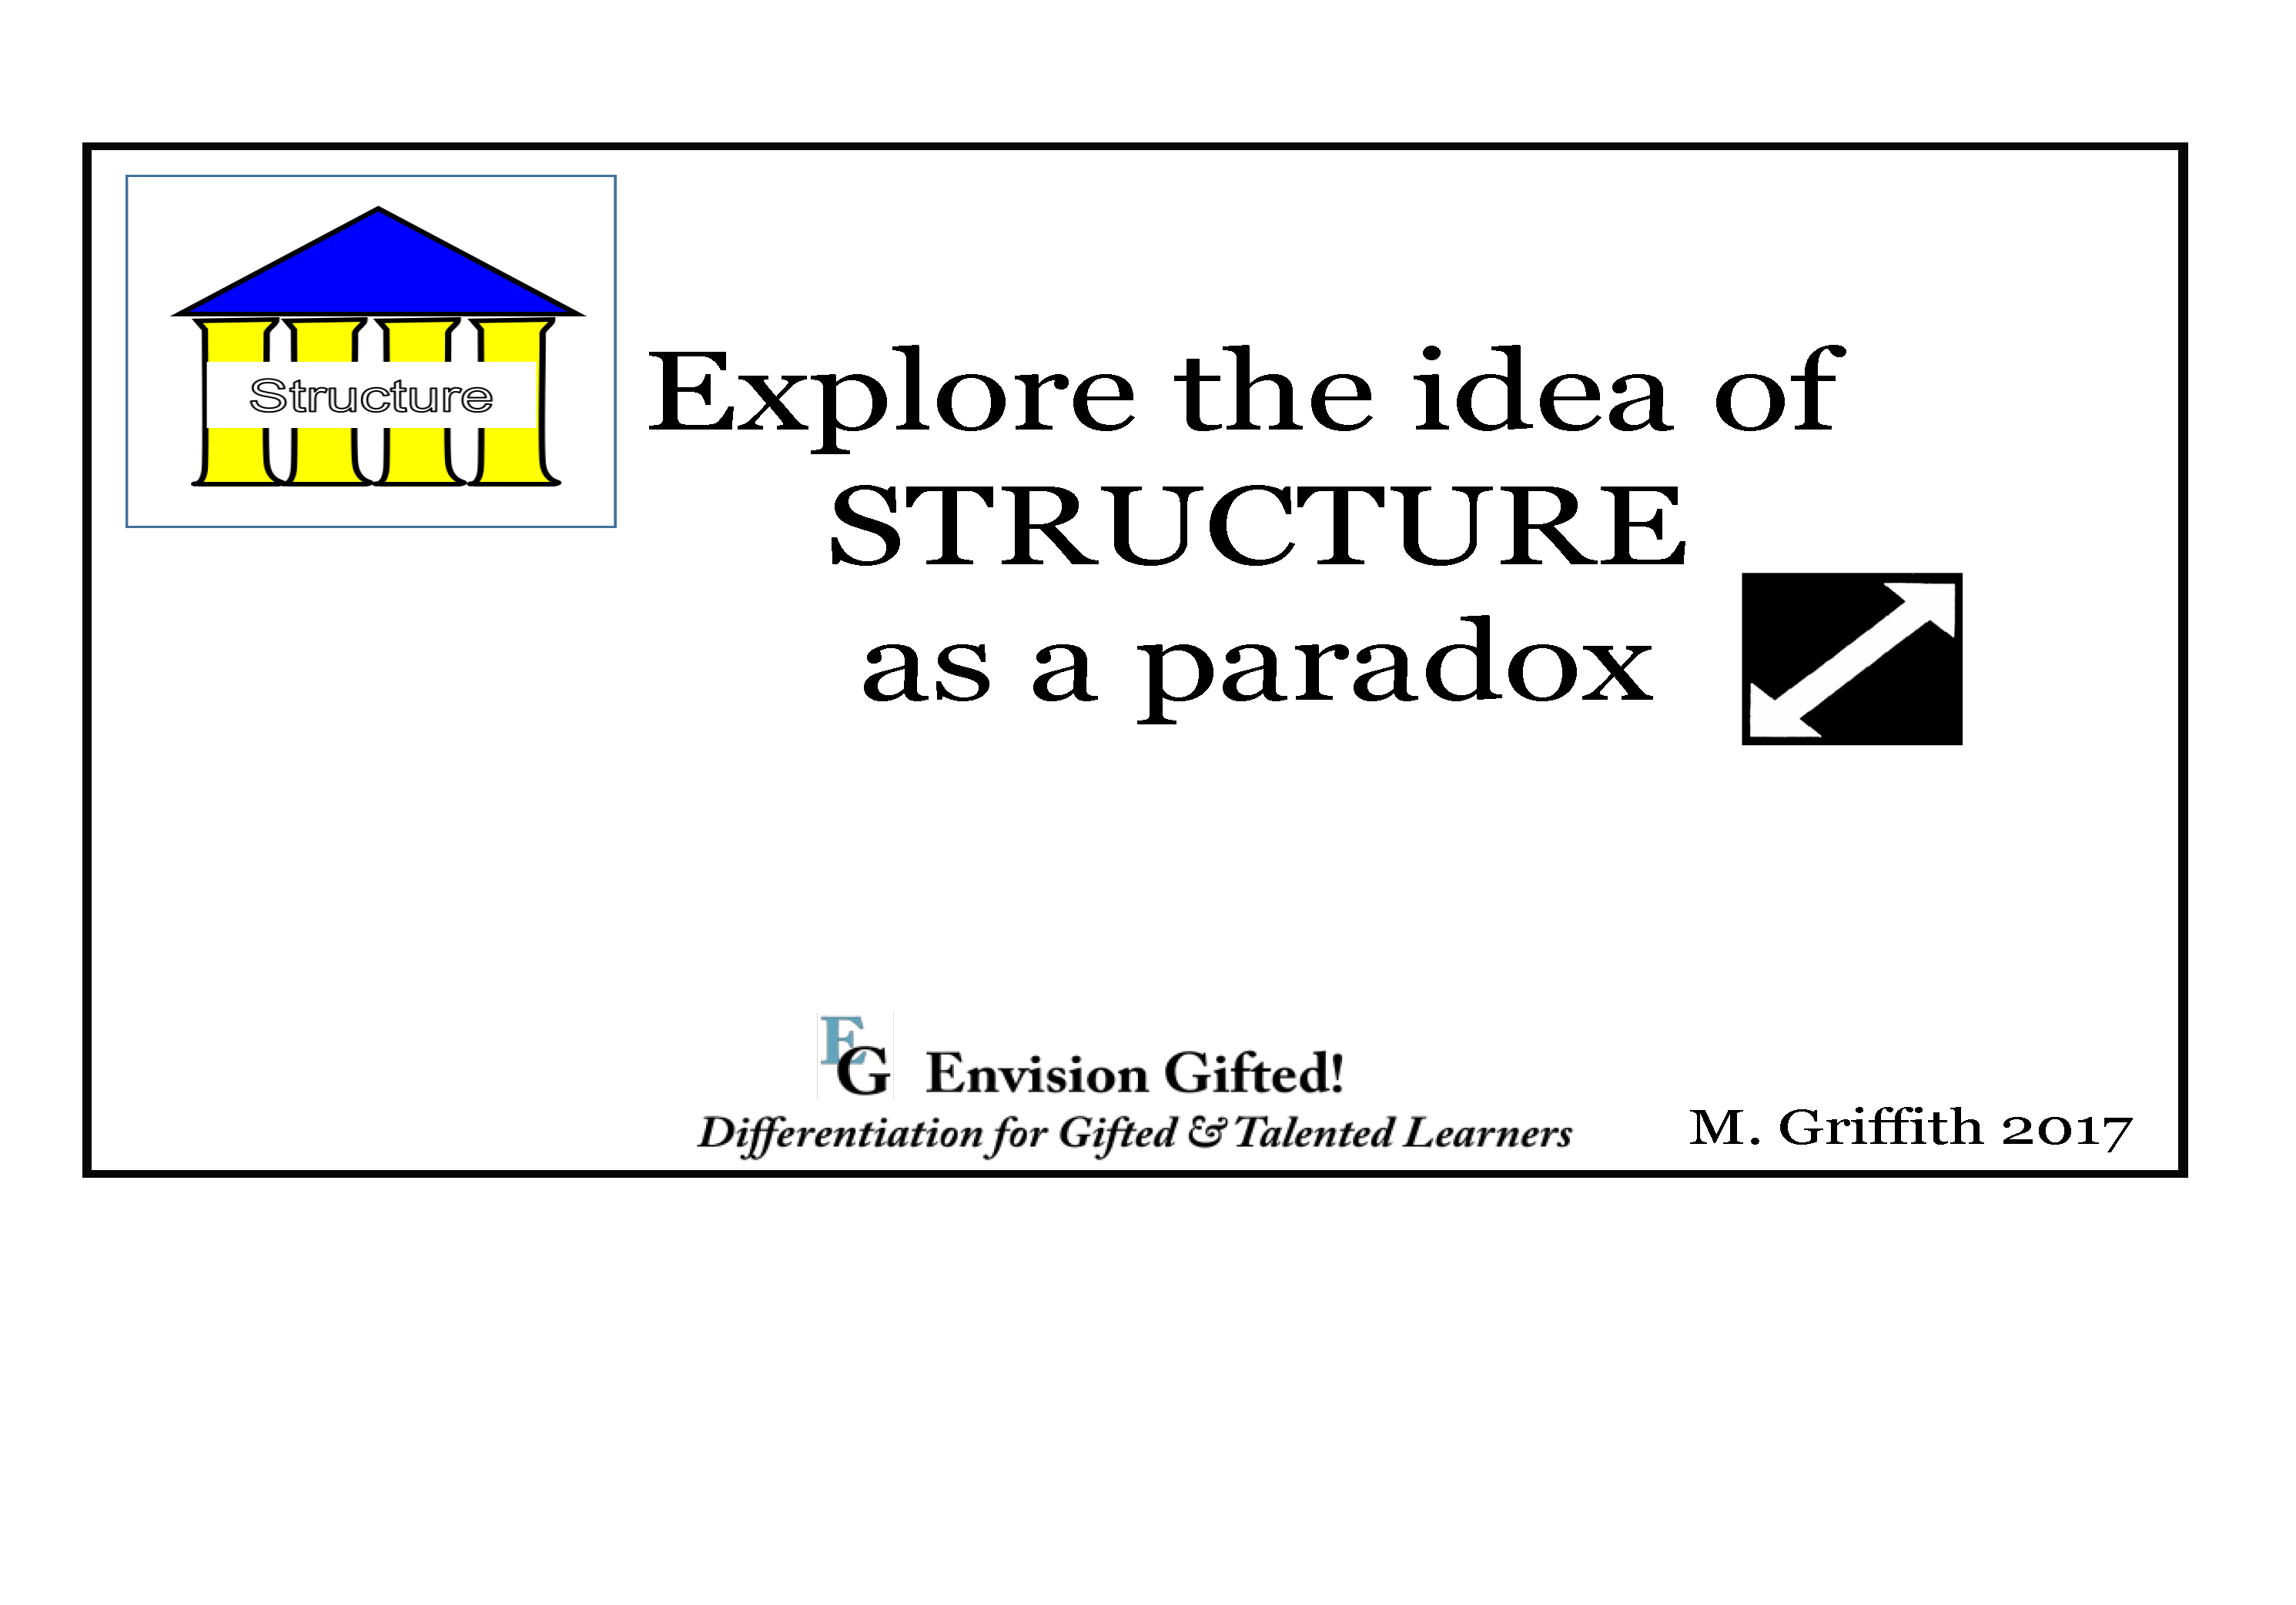 Envision Gifted. Universal Theme. Structure as Paradox